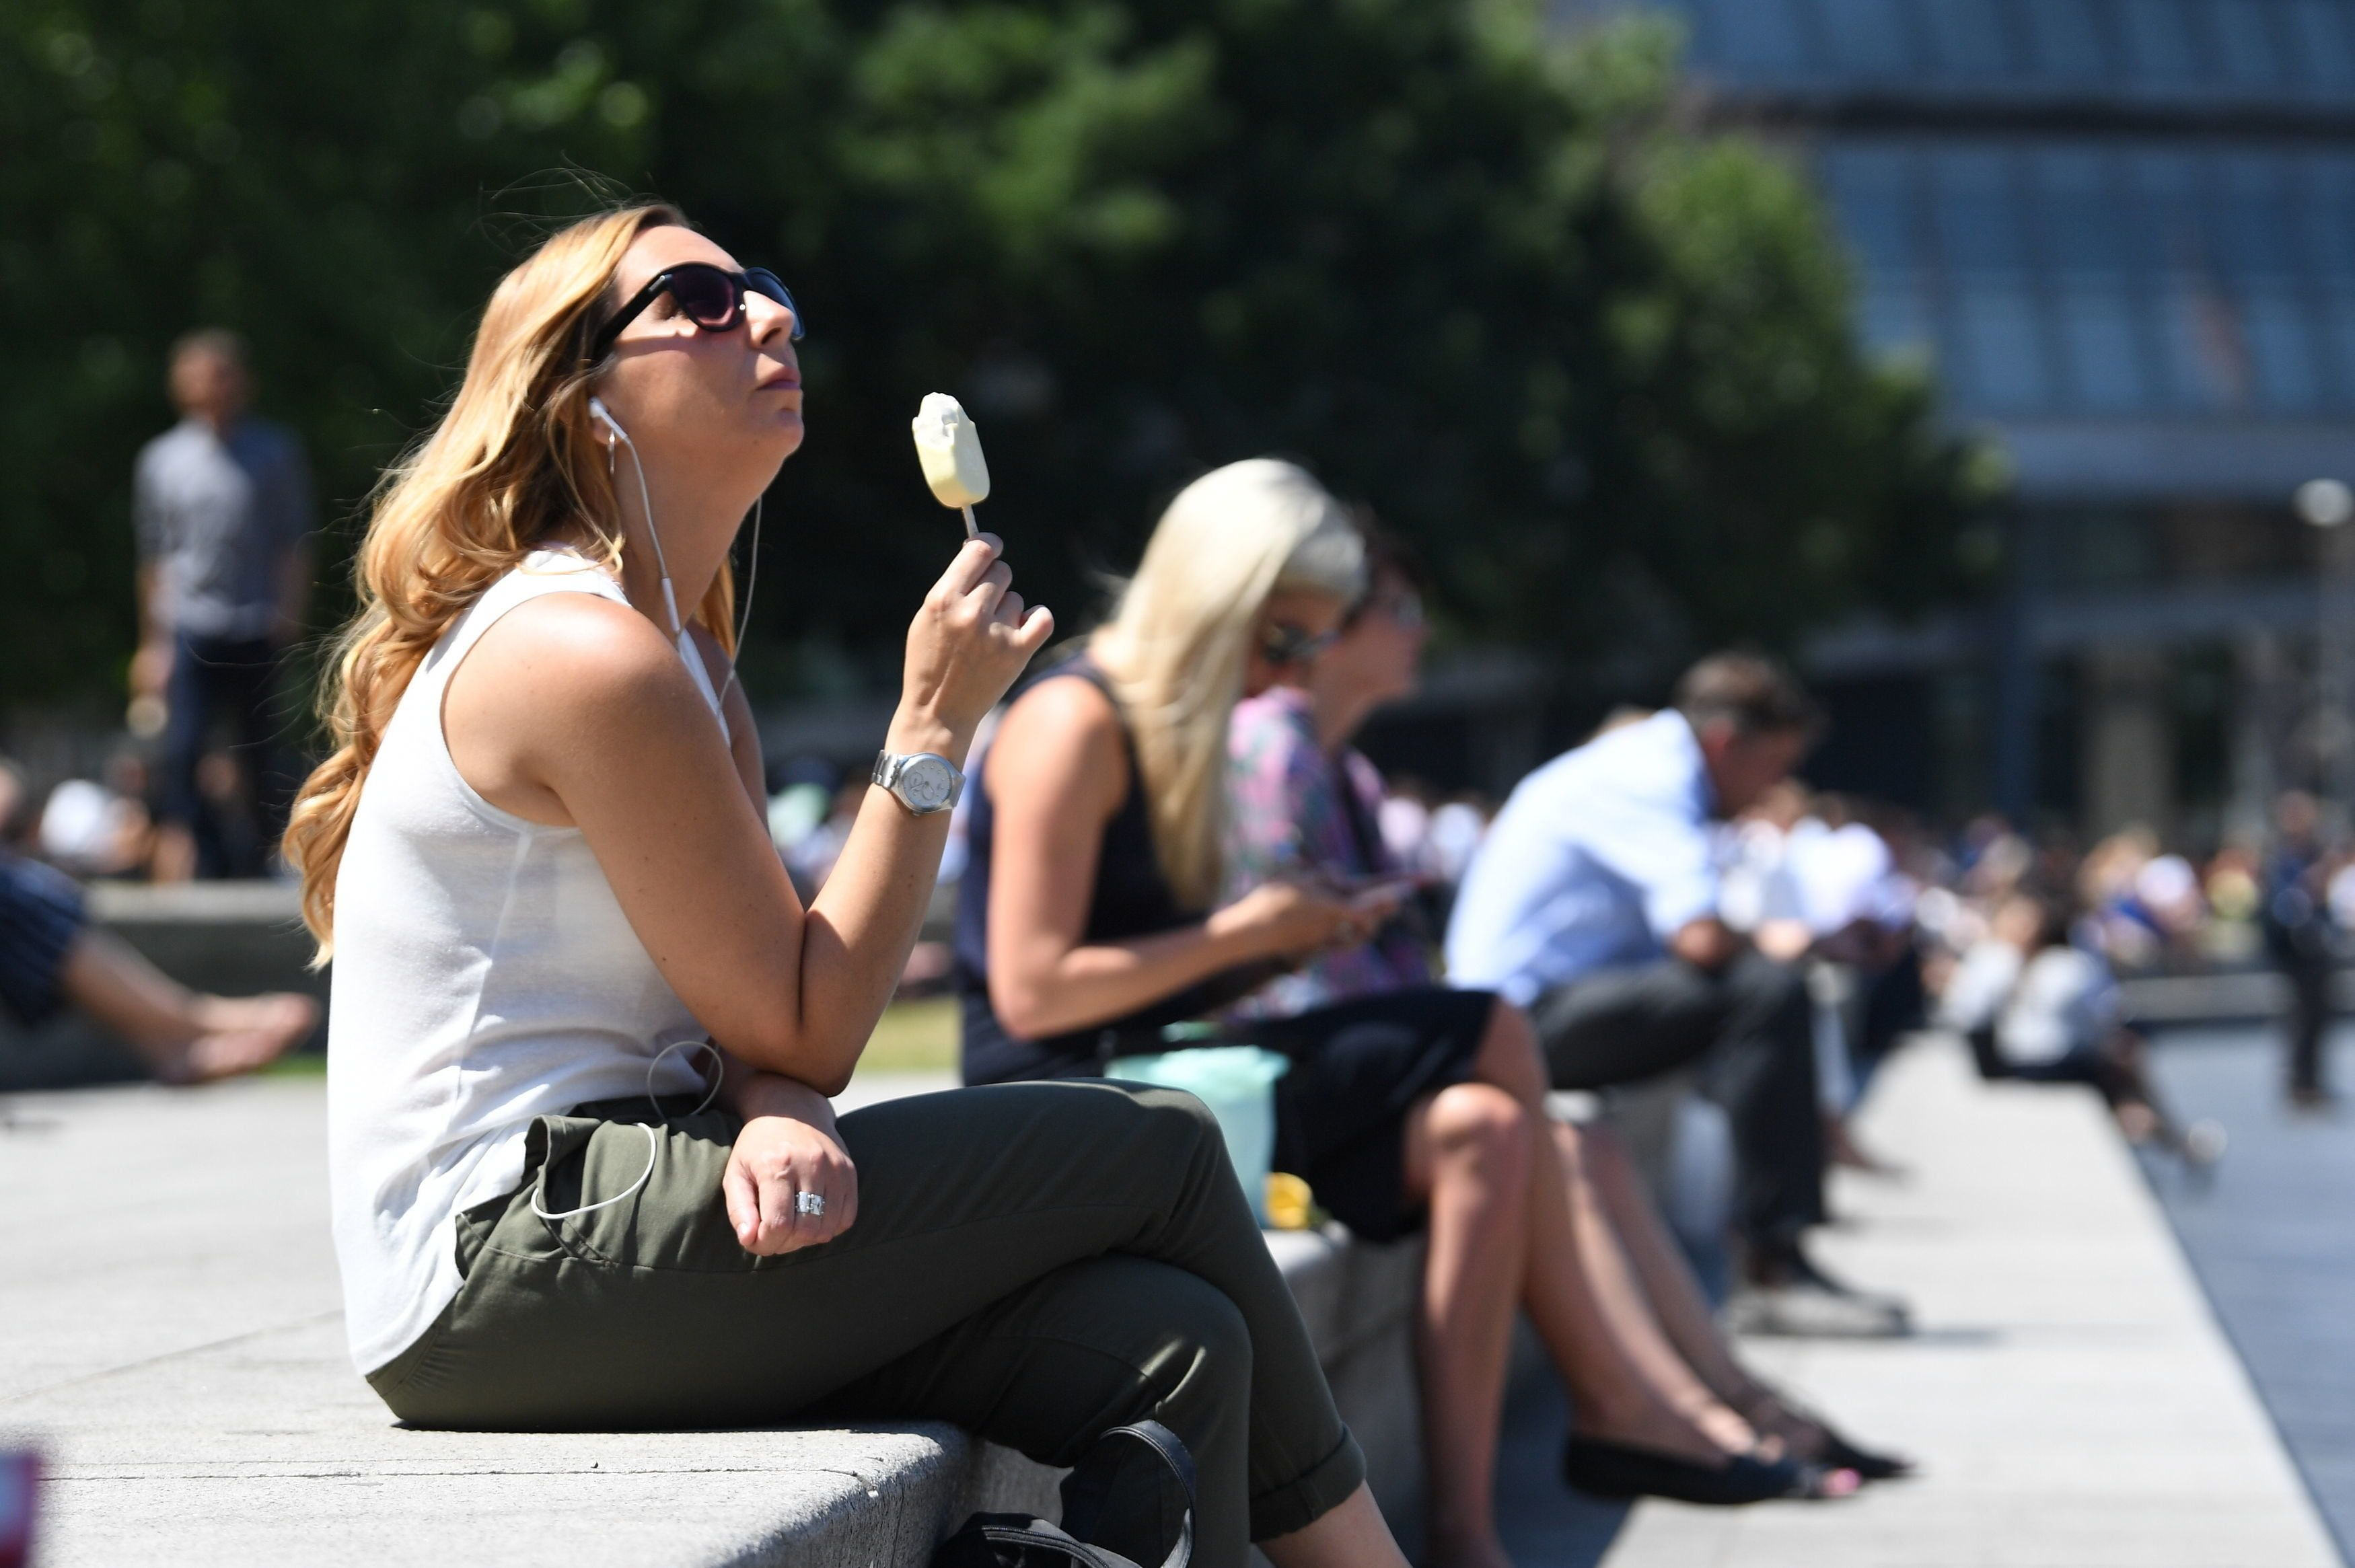 About That Heatwave - There's Good News And Then There's Some Bad